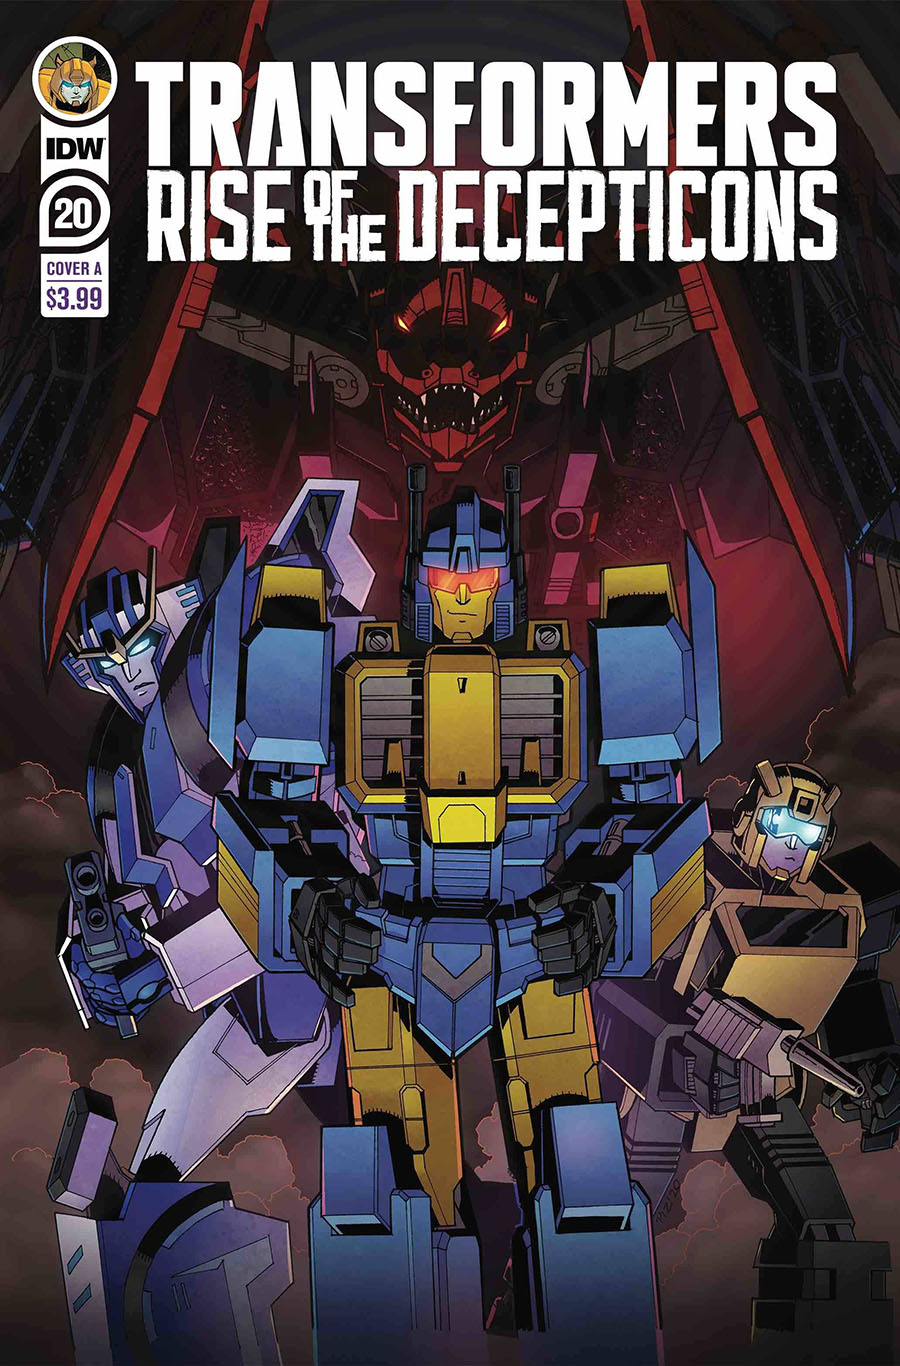 Transformers Vol 4 #20 Cover A Regular Ed Pirrie Cover